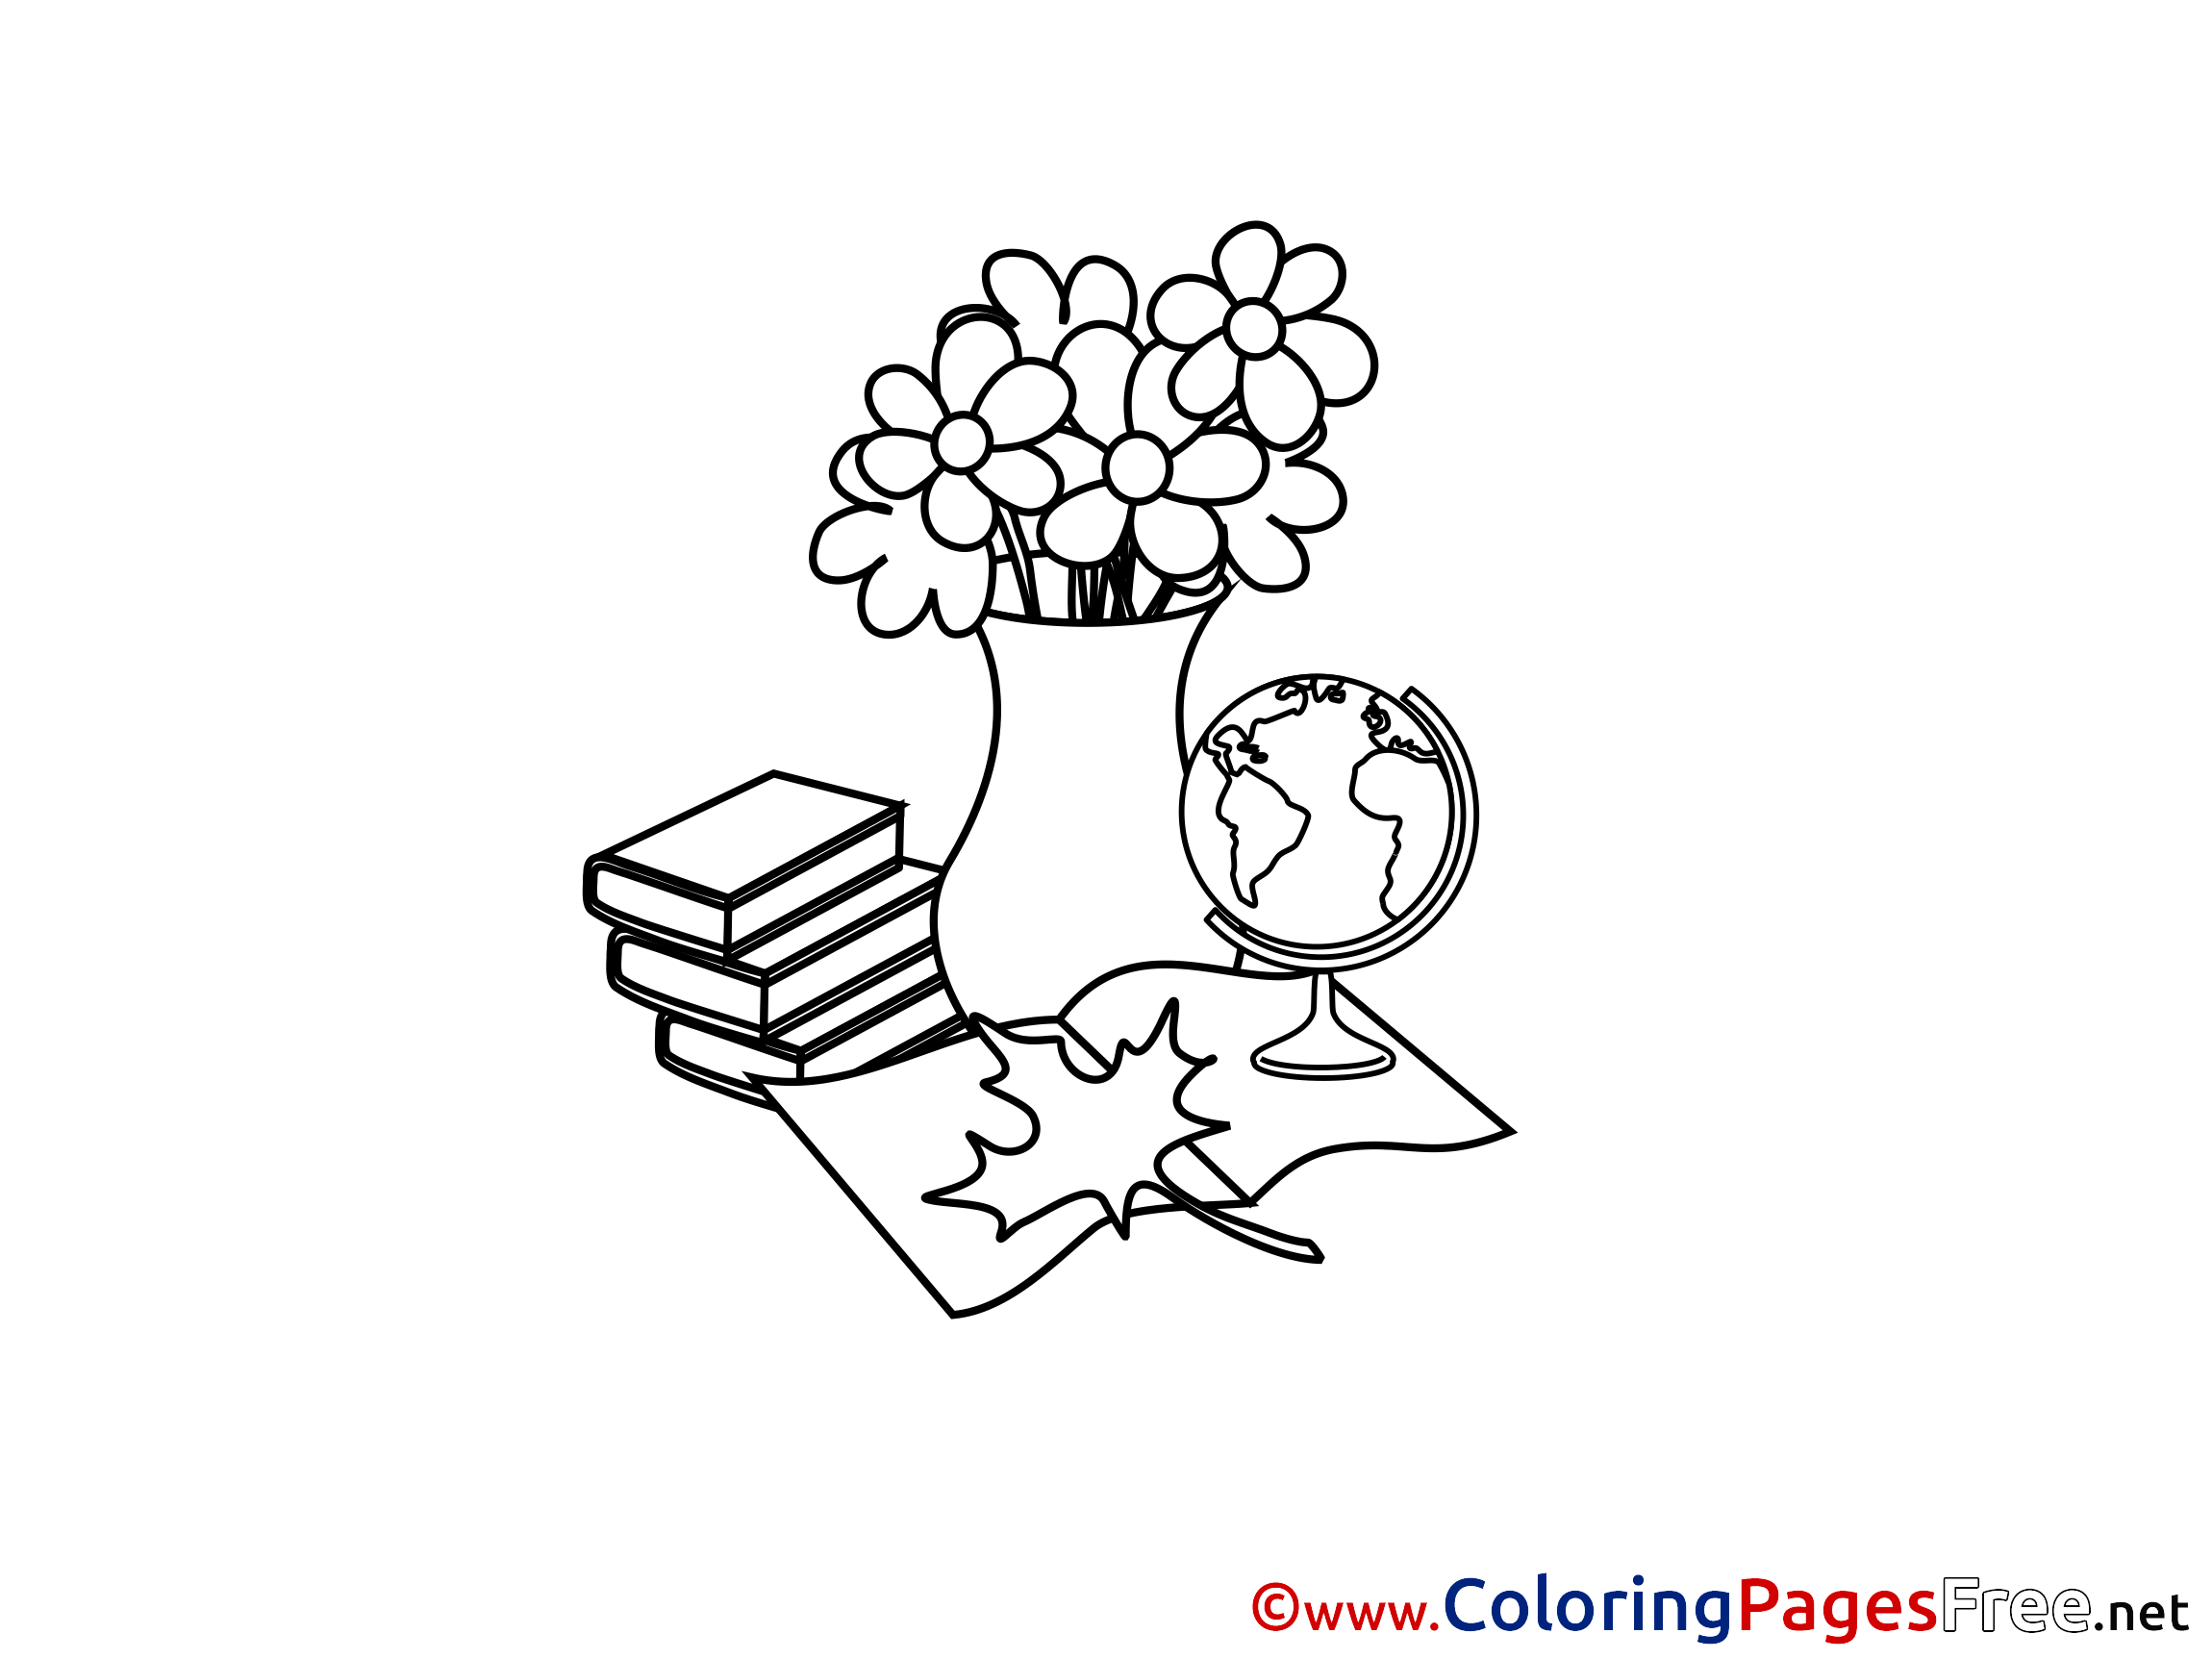 Free coloring pages vases - Free Coloring Pages Vases Coloring Sheet Vase 51